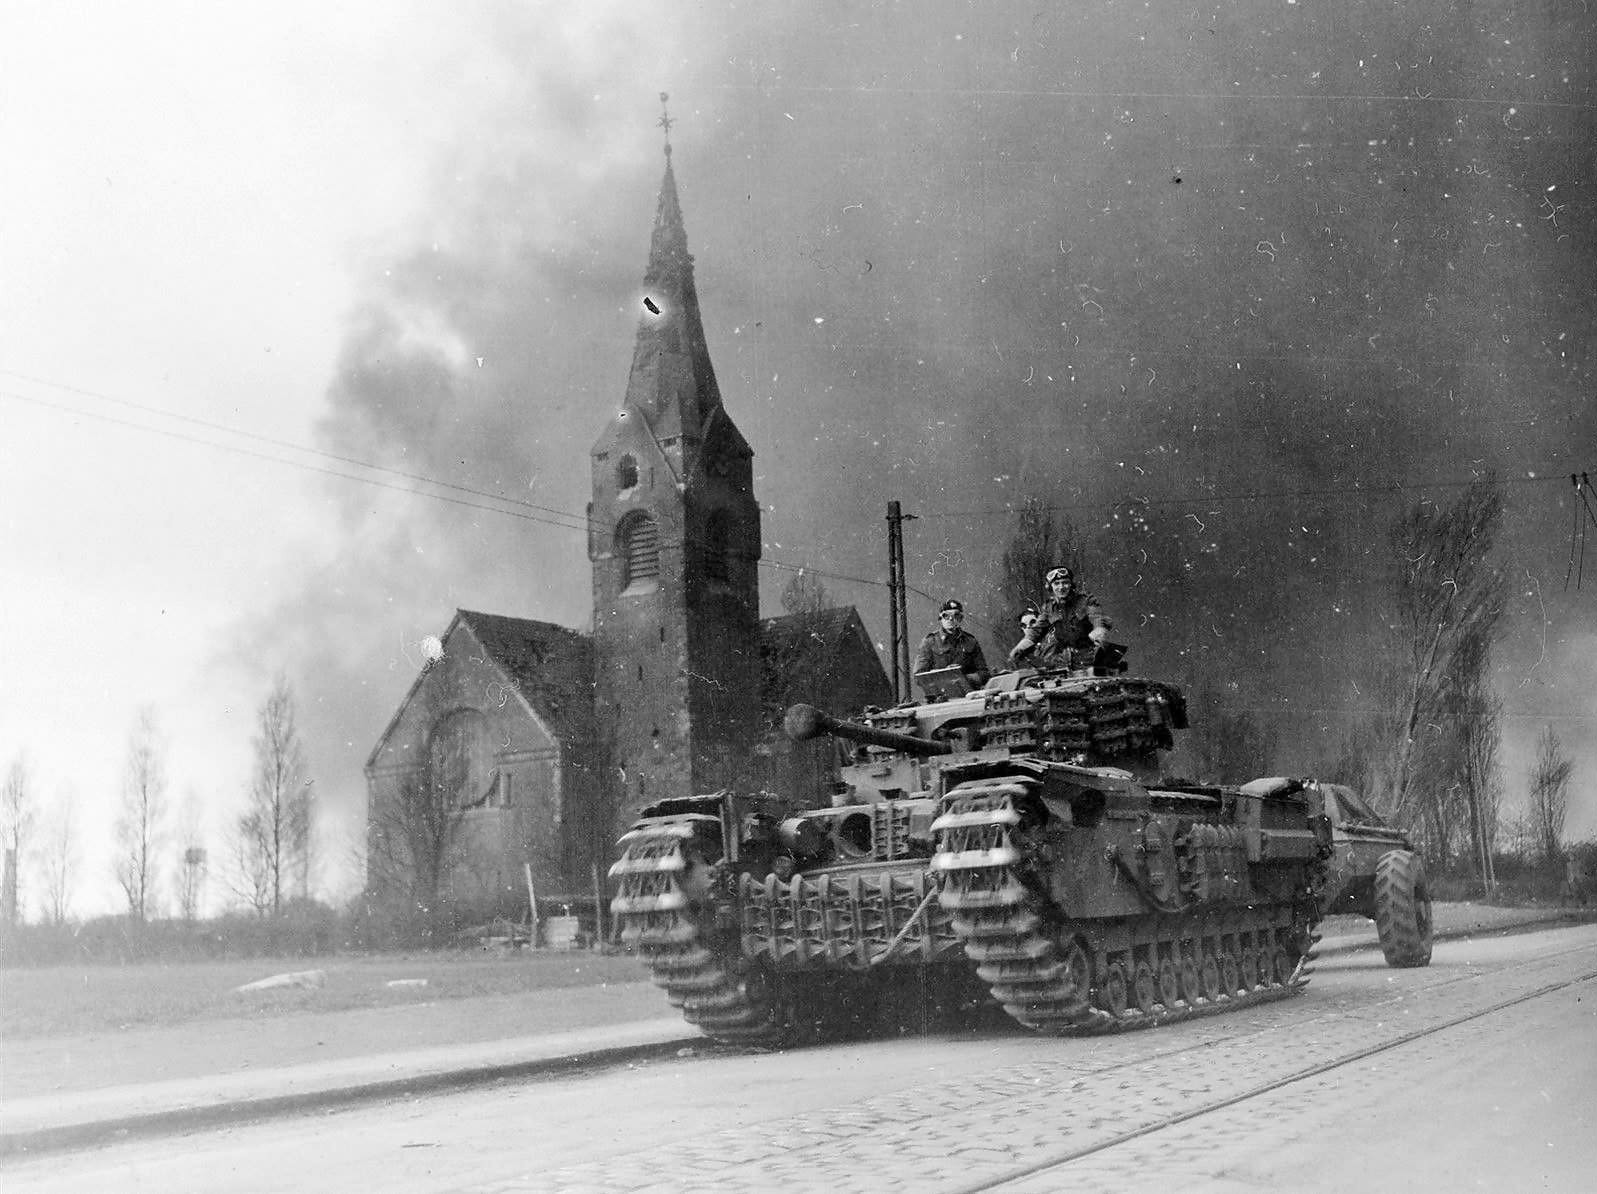 A Churchill Crocodile flamethrower tank of 31st Armoured Brigade, 79th Armoured Division, moves past a church at Oberhausen in the Ruhr, Germany, April 1945. Smoke from the burning Ruhrchemie AG synthetic oil plant (Sterkrade/Holten) fills the sky behind. IWM photo EA 60392.